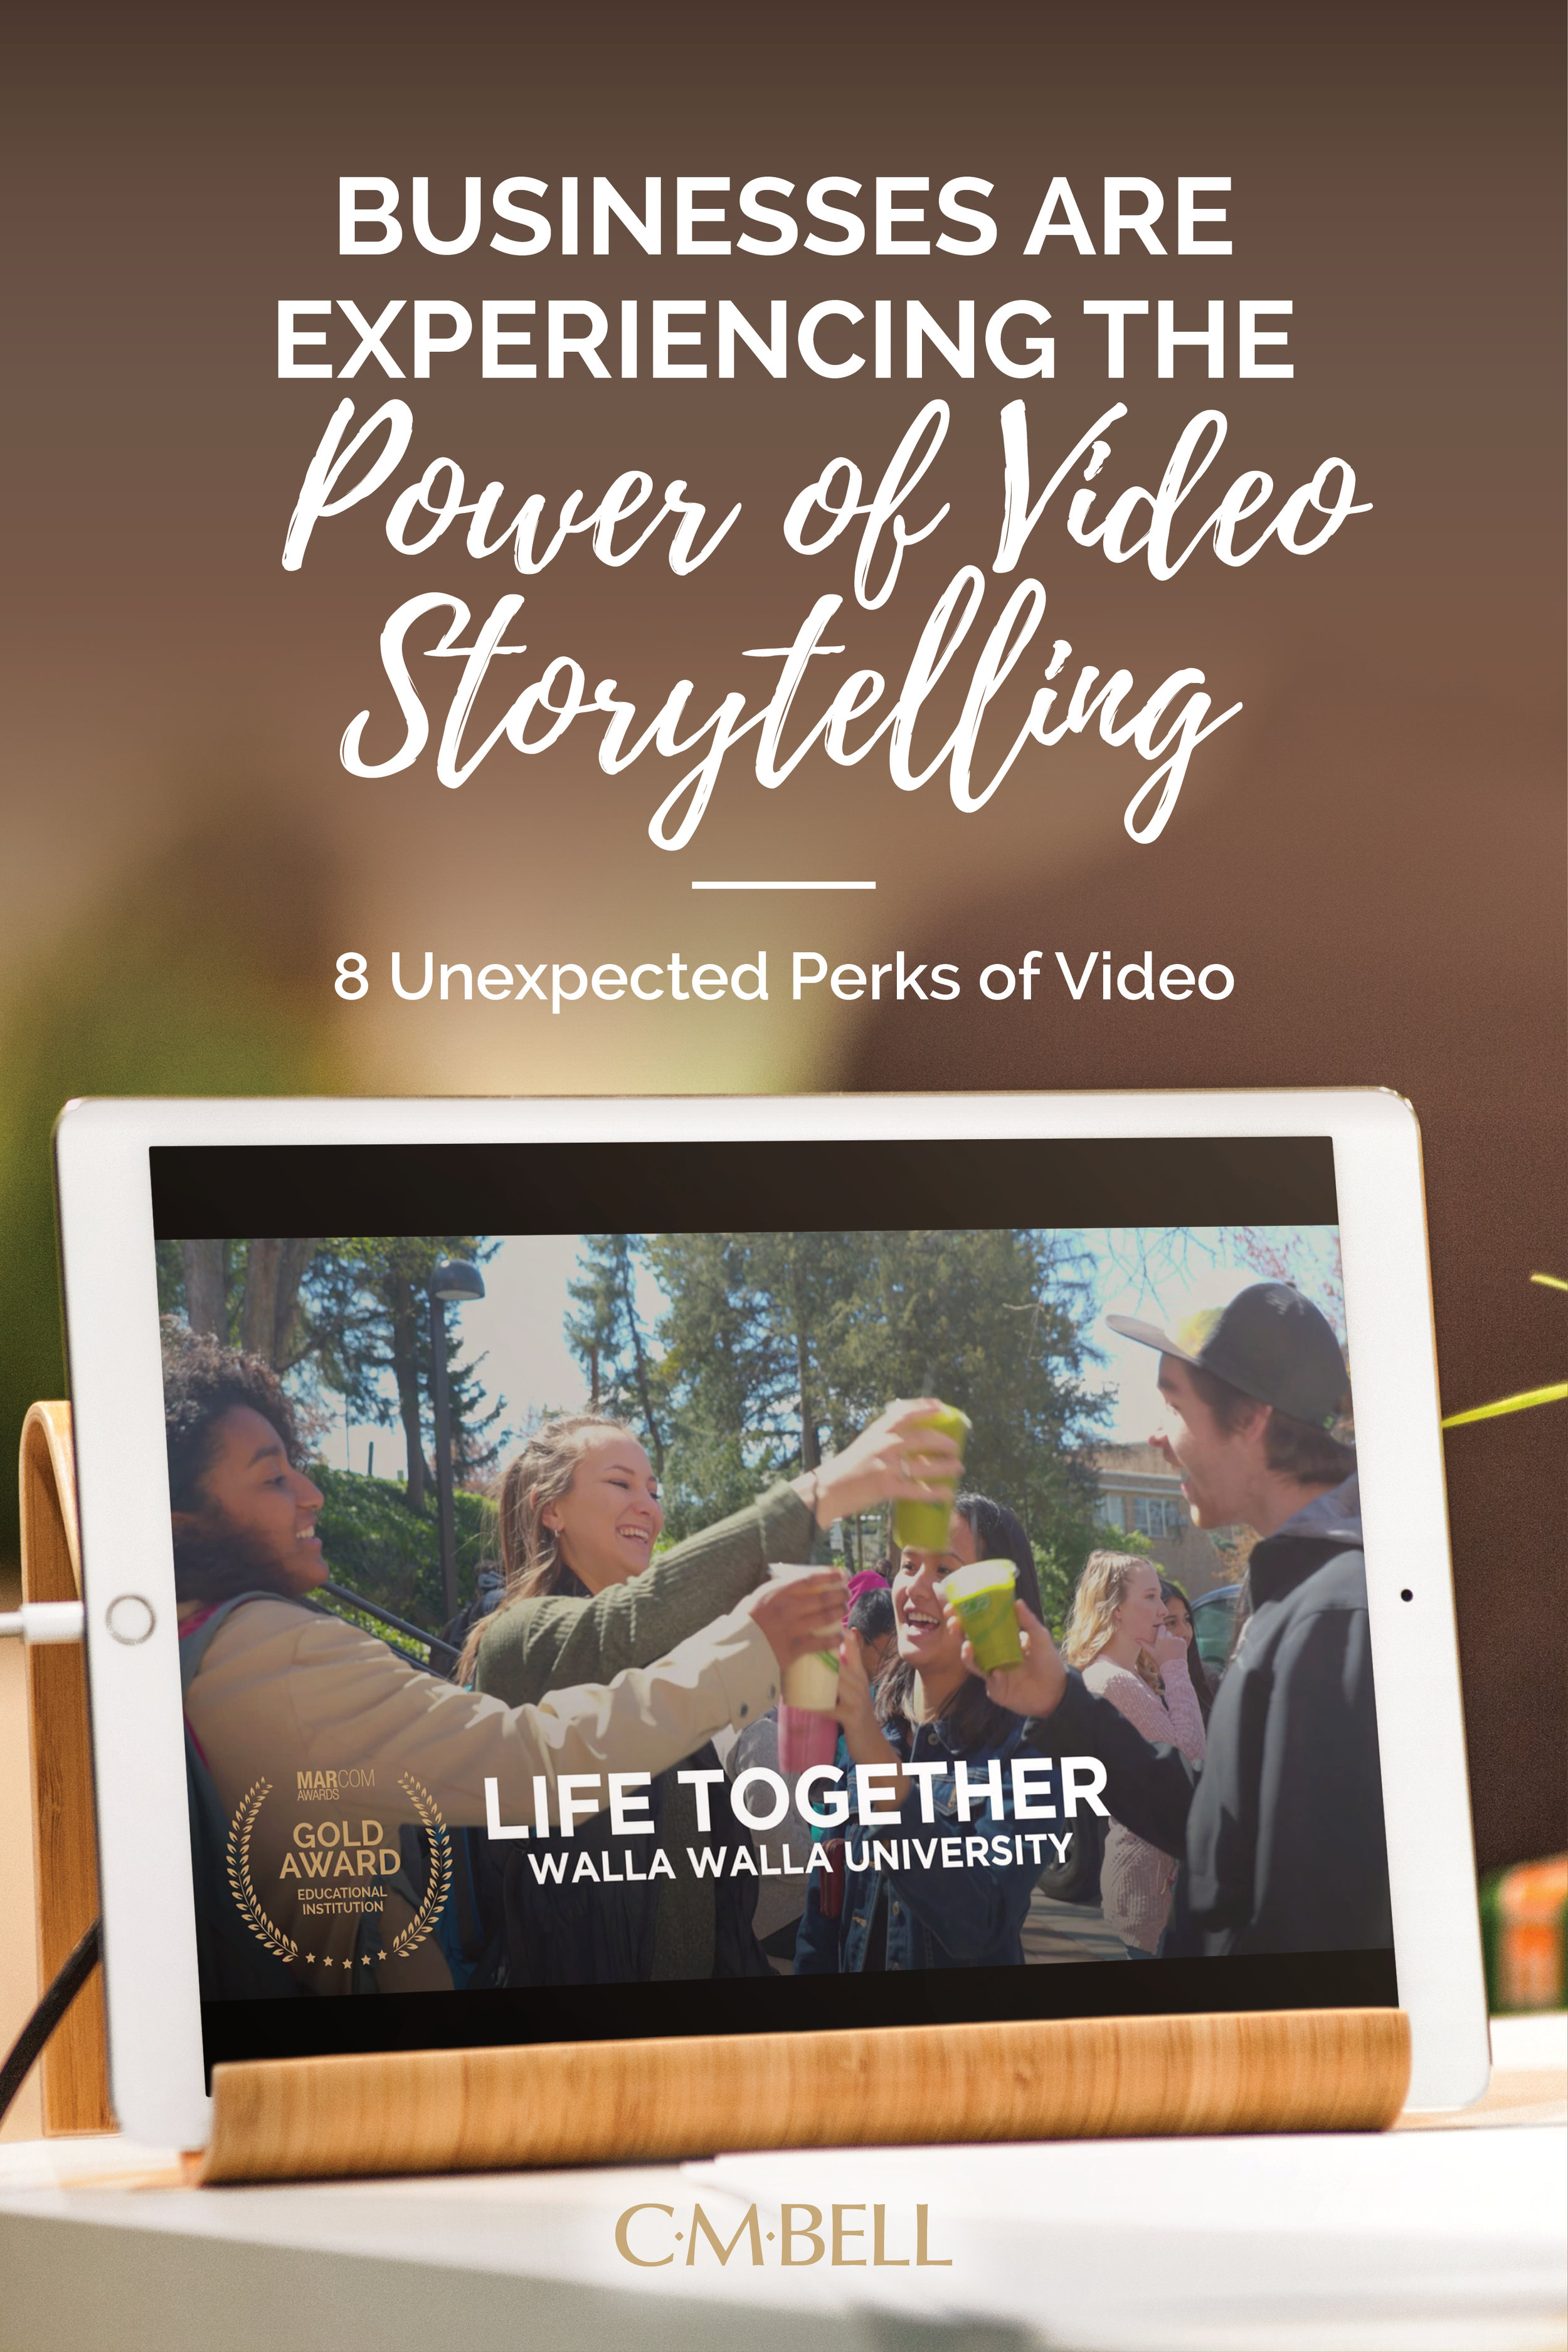 businesses-are-experiencing-the-power-of-video-storytelling.jpg